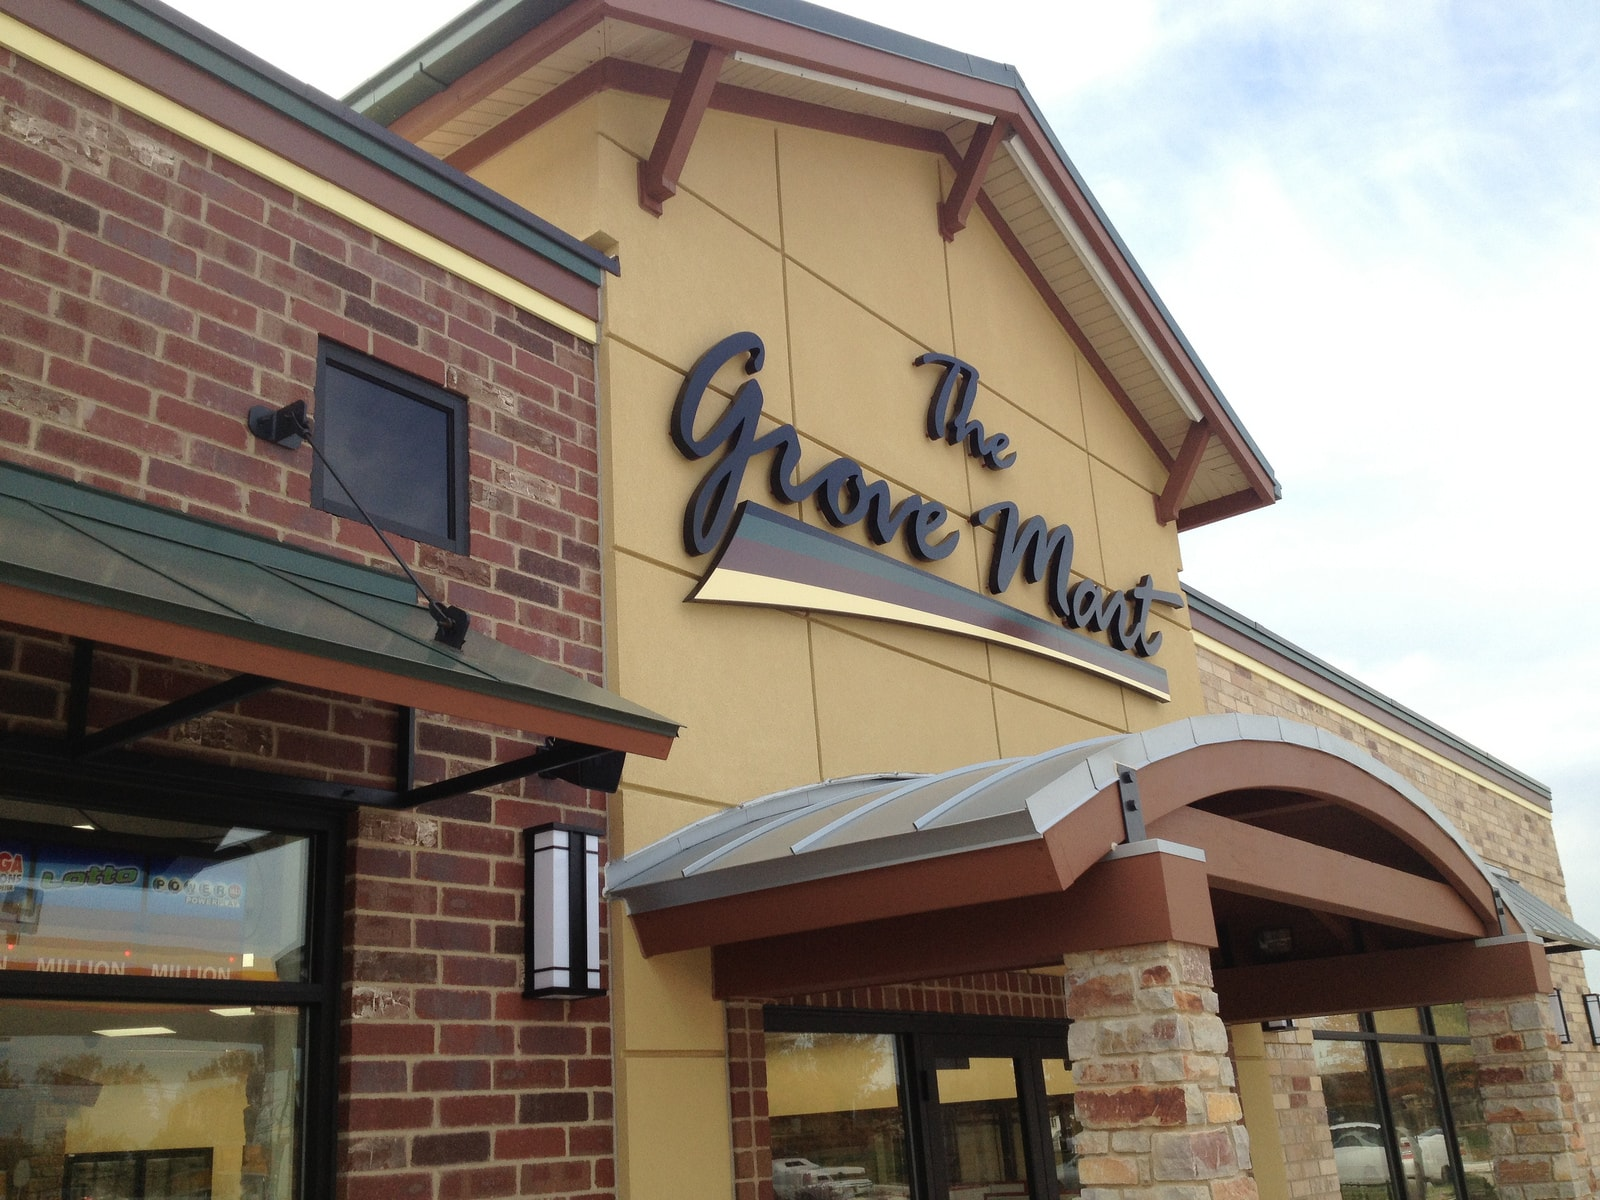 The Grove Mart Exterior Sign